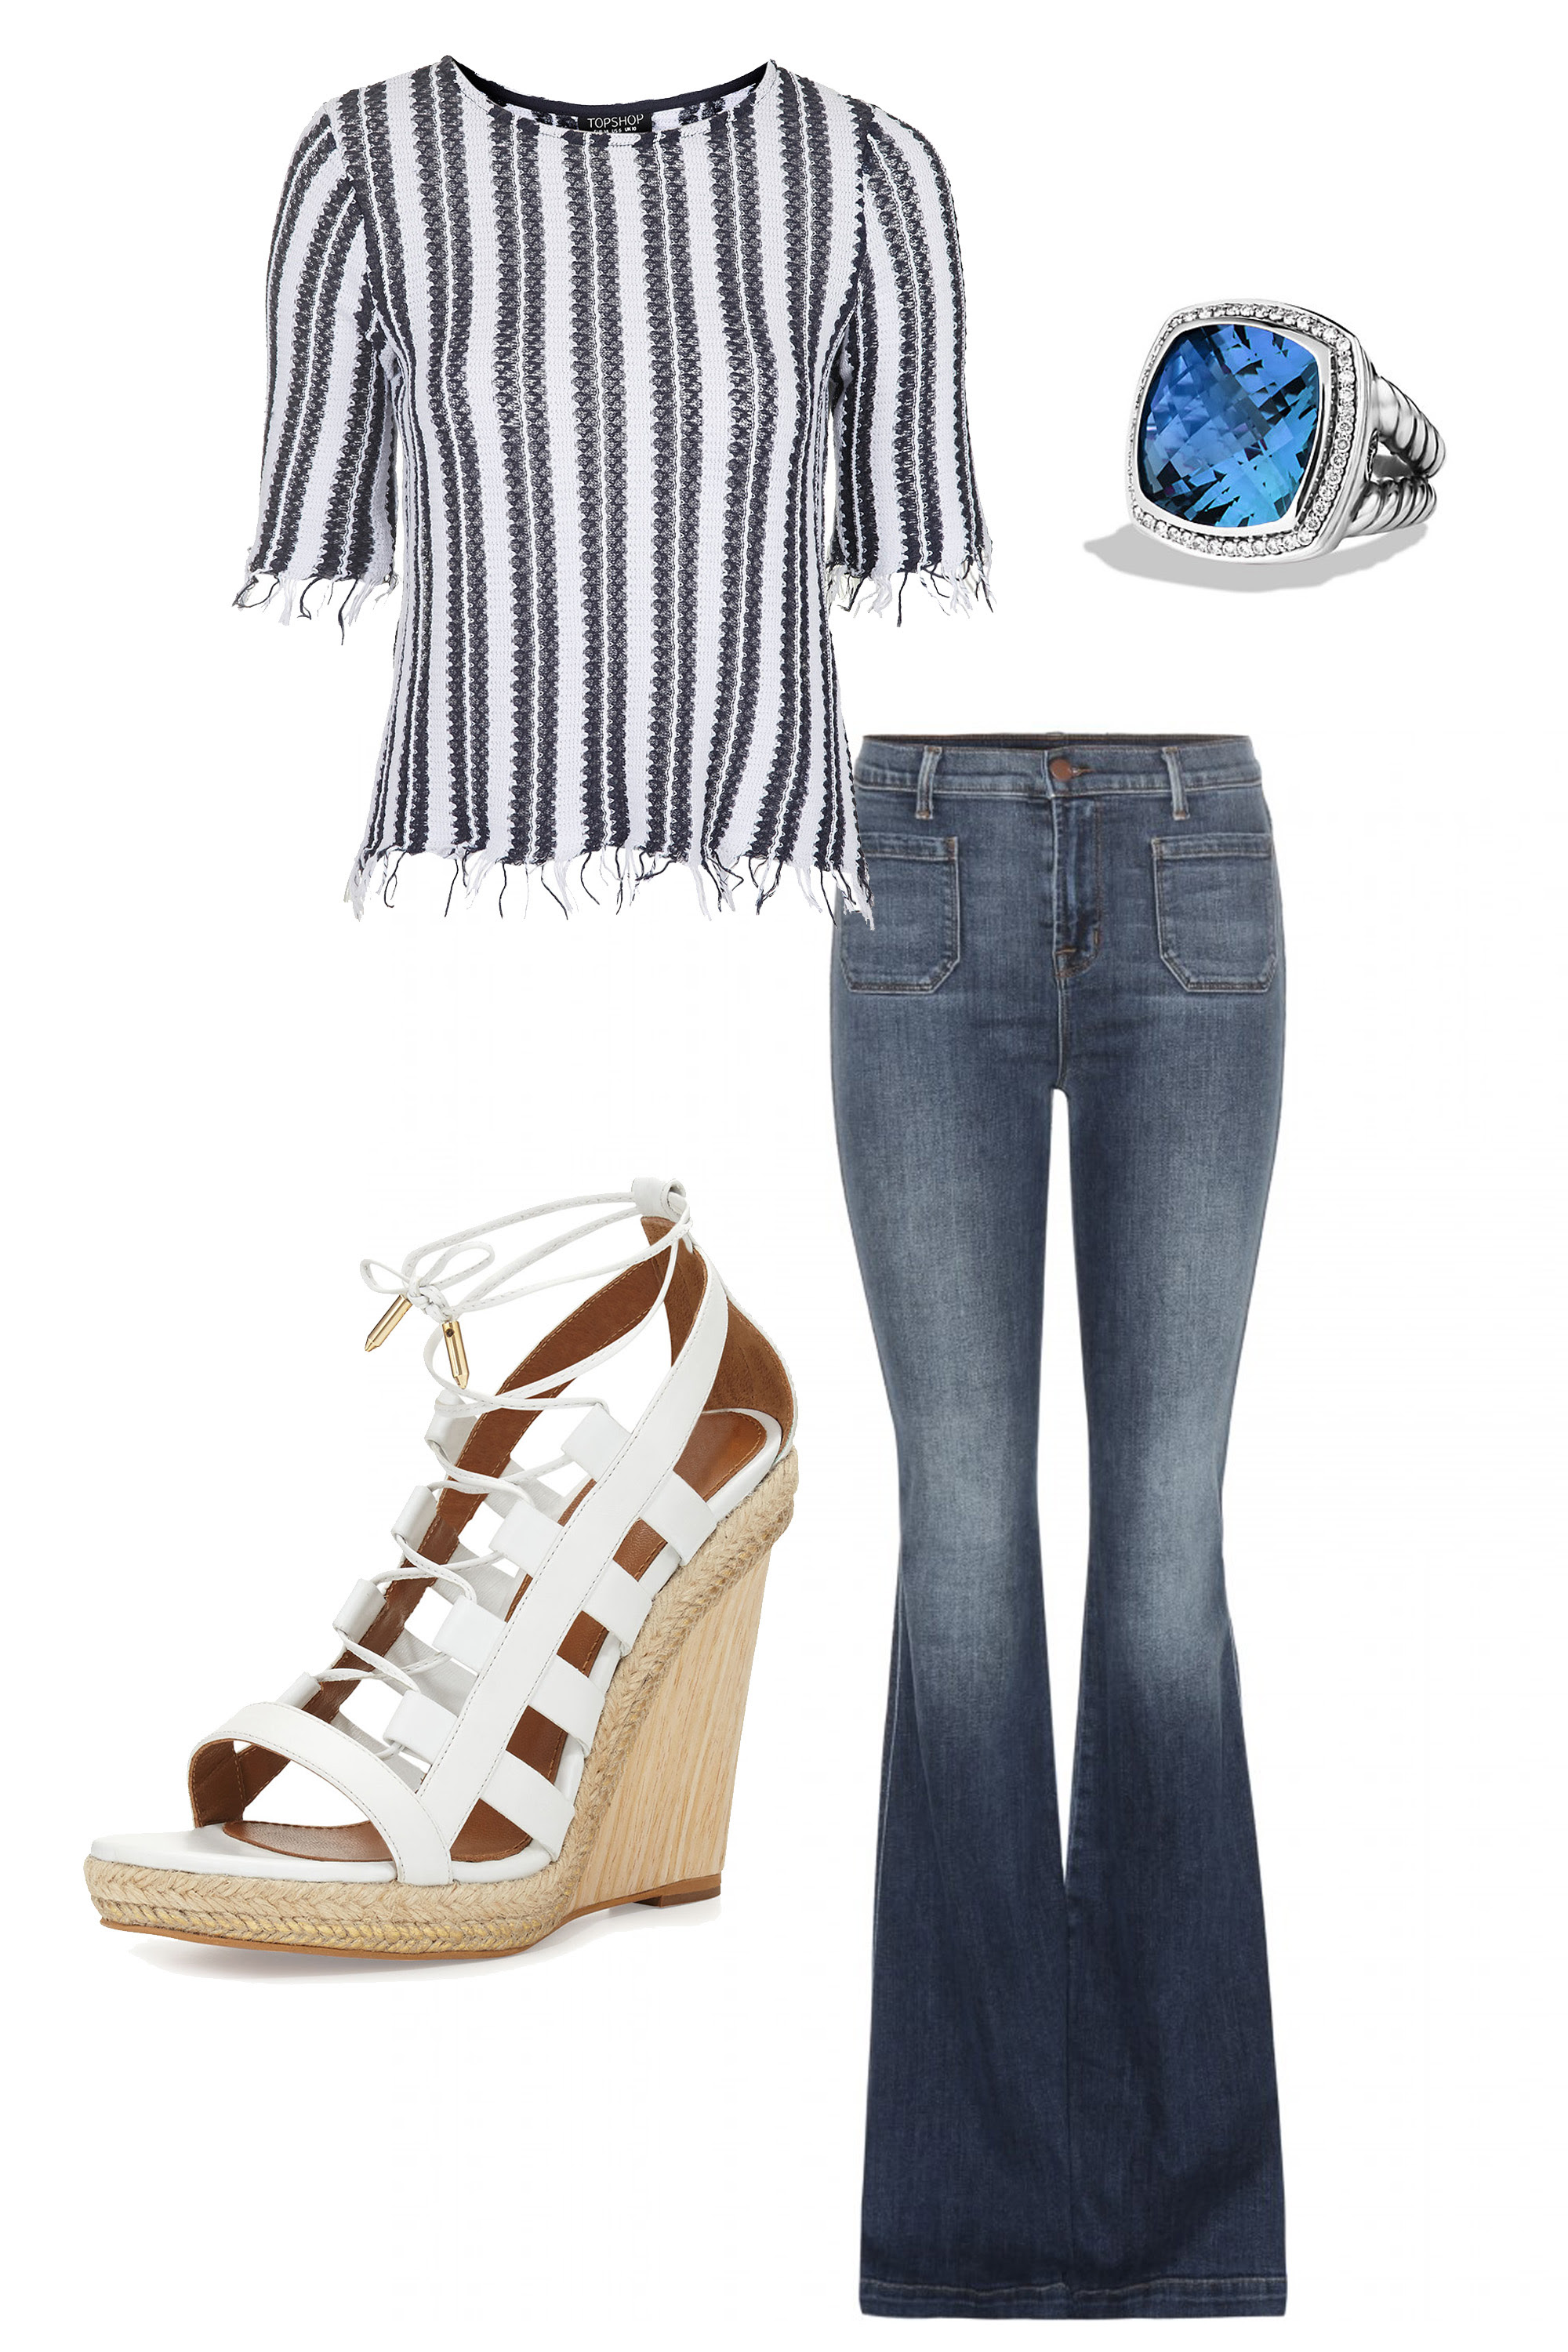 5 high low denim outfits  diamonds and denim combos to